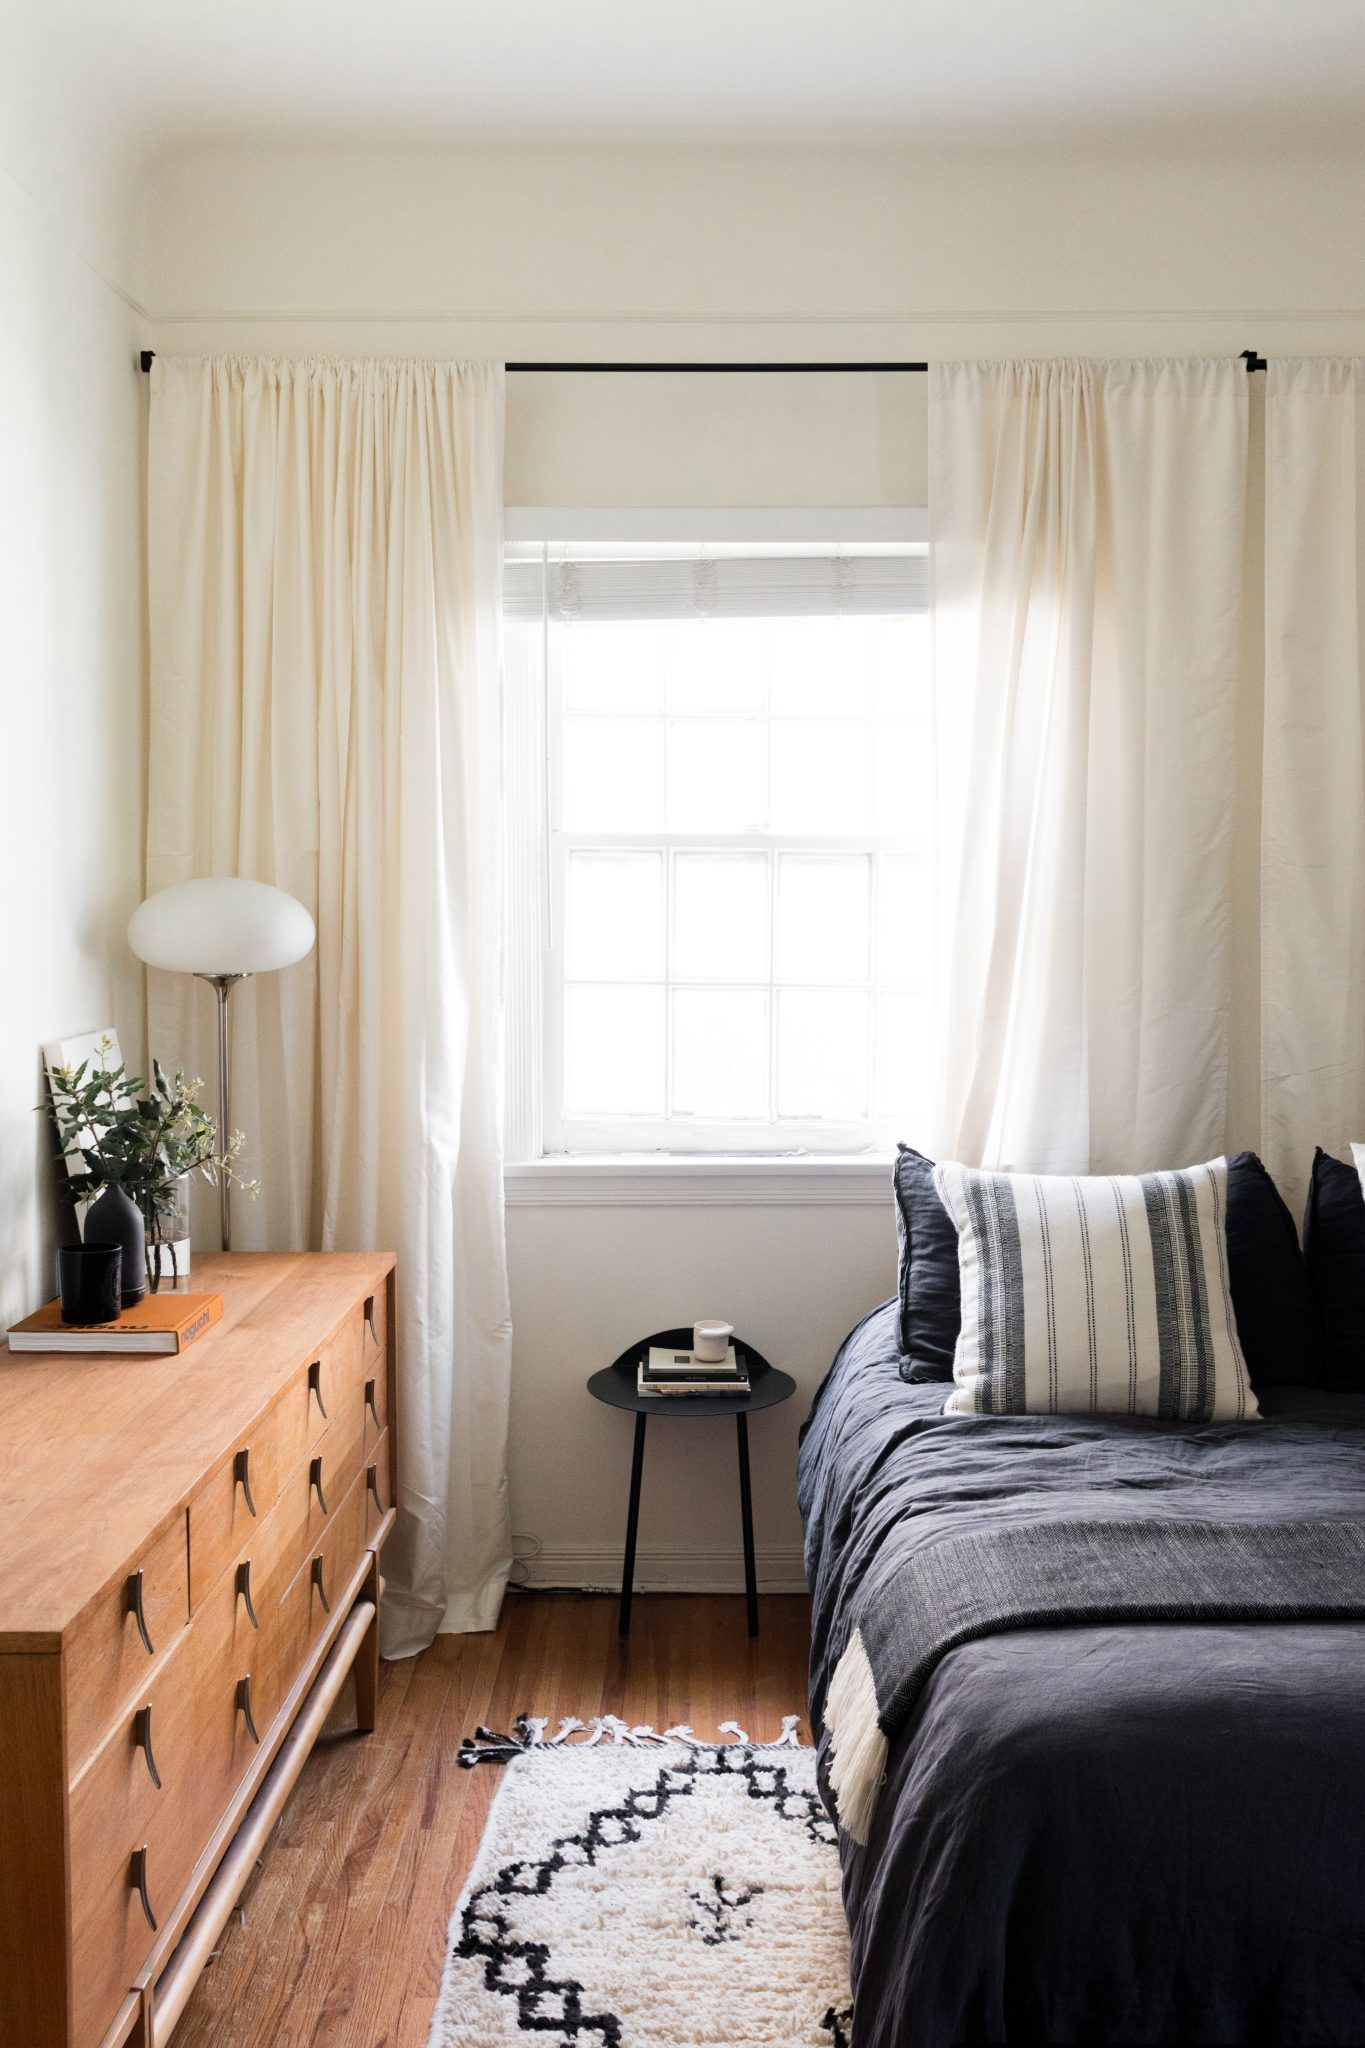 Browse Bay Window Ideas Images To Bay Window Curtains Bay Window Treatments Bay Window Bay Window Seat And Bay Window Home Decor Bedroom Home Small Bedroom